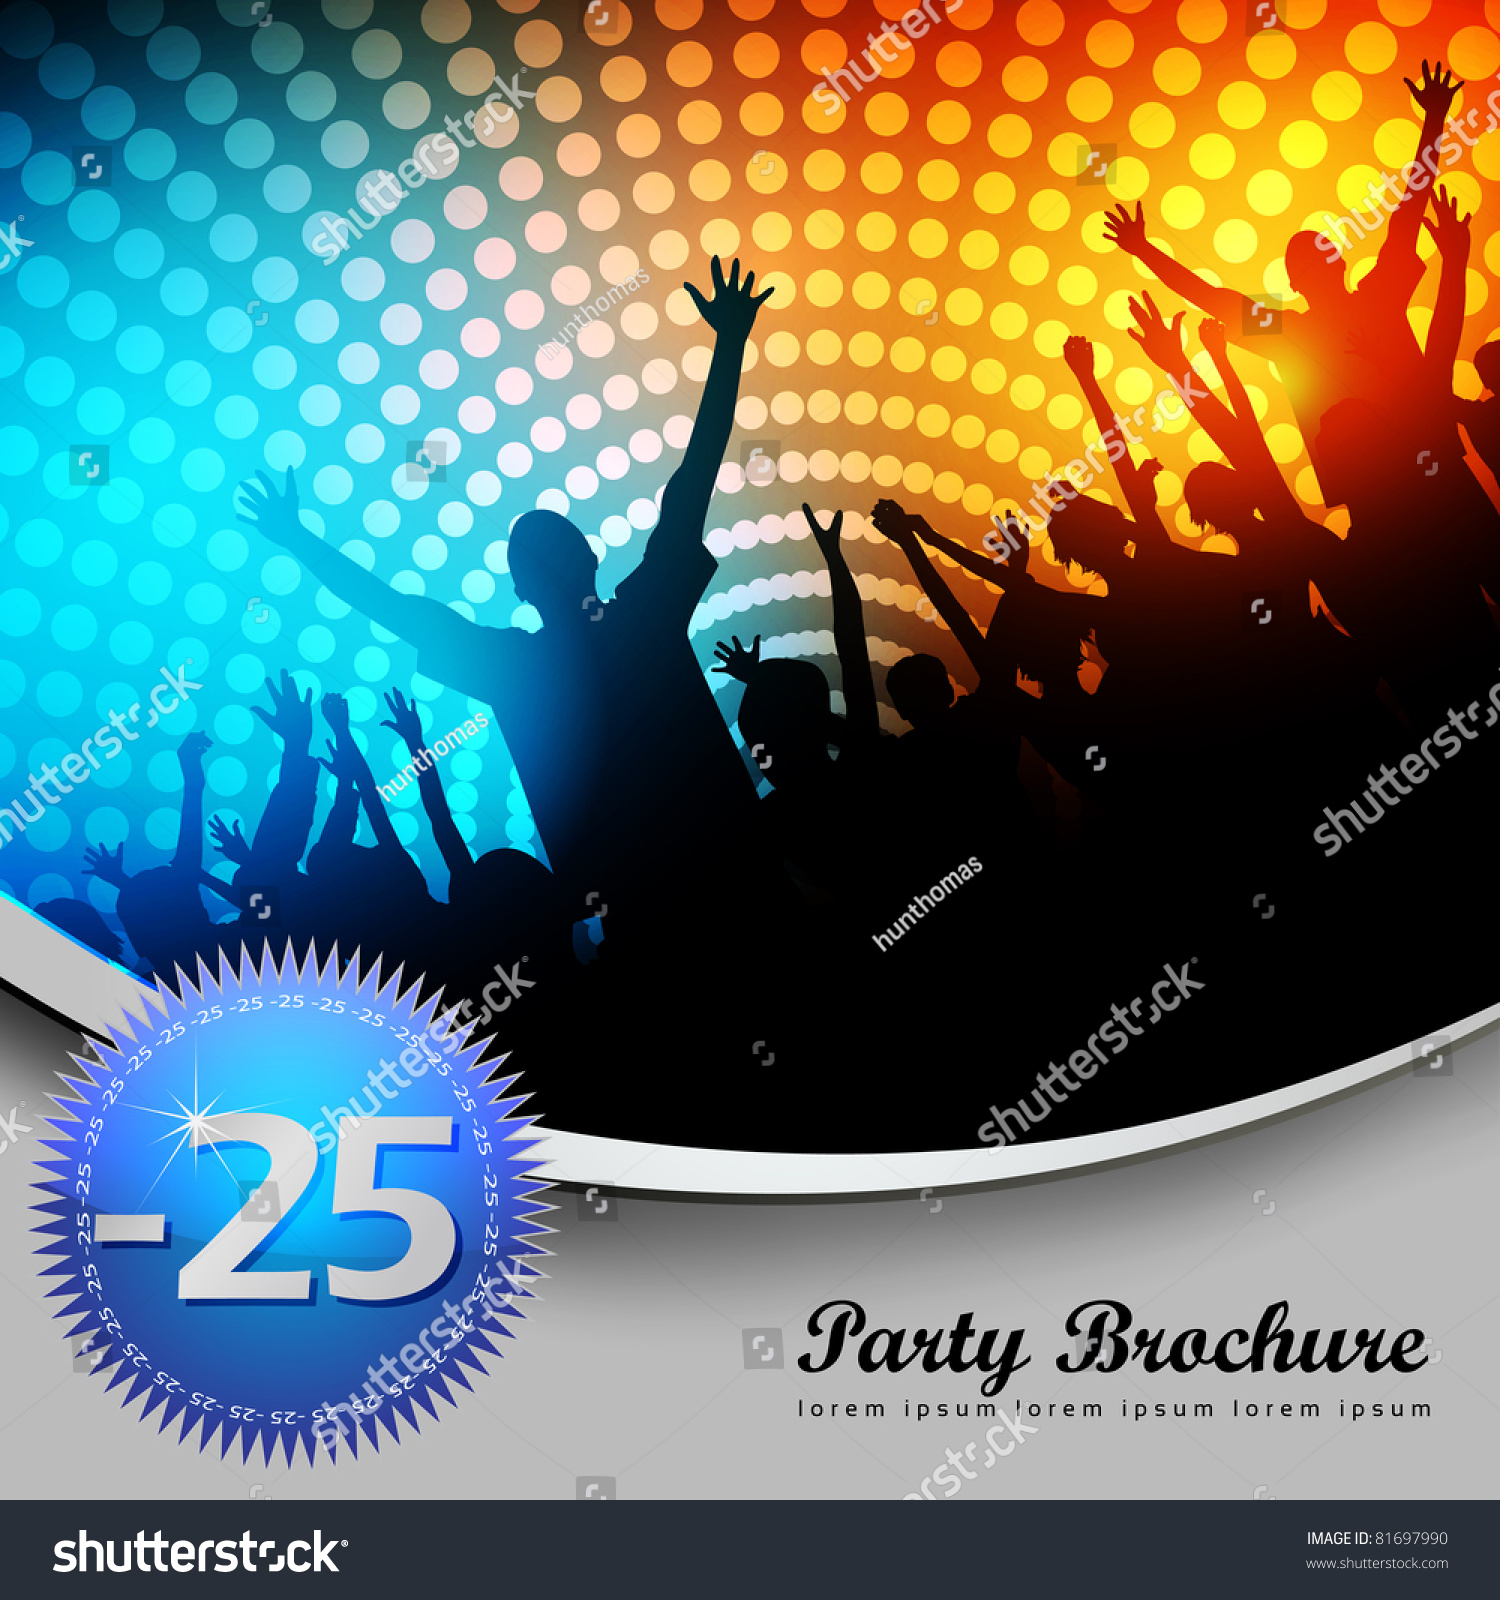 party brochure template